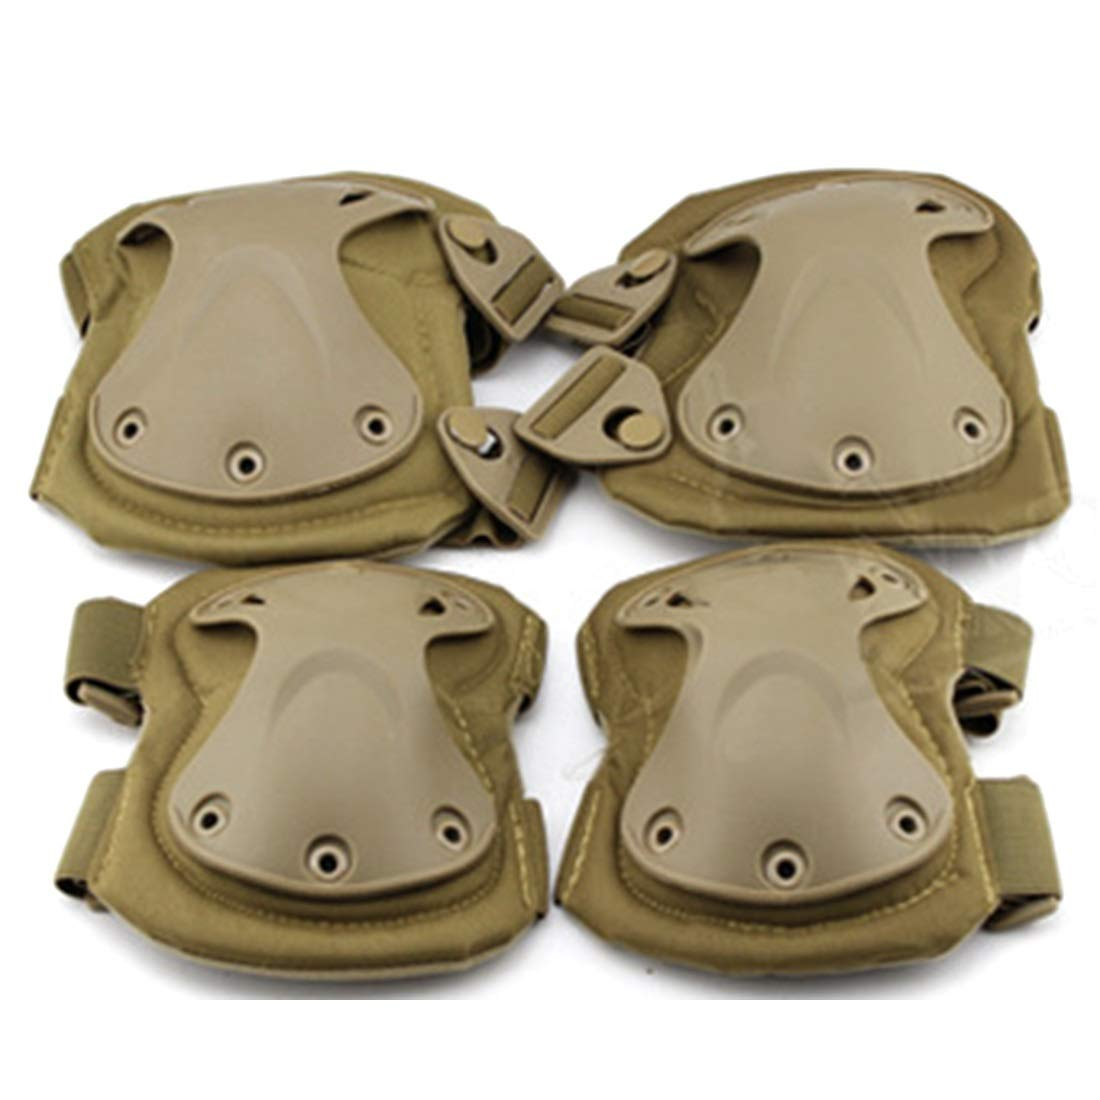 AIYAMAYA EVA Protective Gear Outdoor Riding Hiking Knee Pads Elbow Suit Field Tactical Equipment Knee Pads Elbow Suit (Style : Mud (PA-03-T) (Mm))